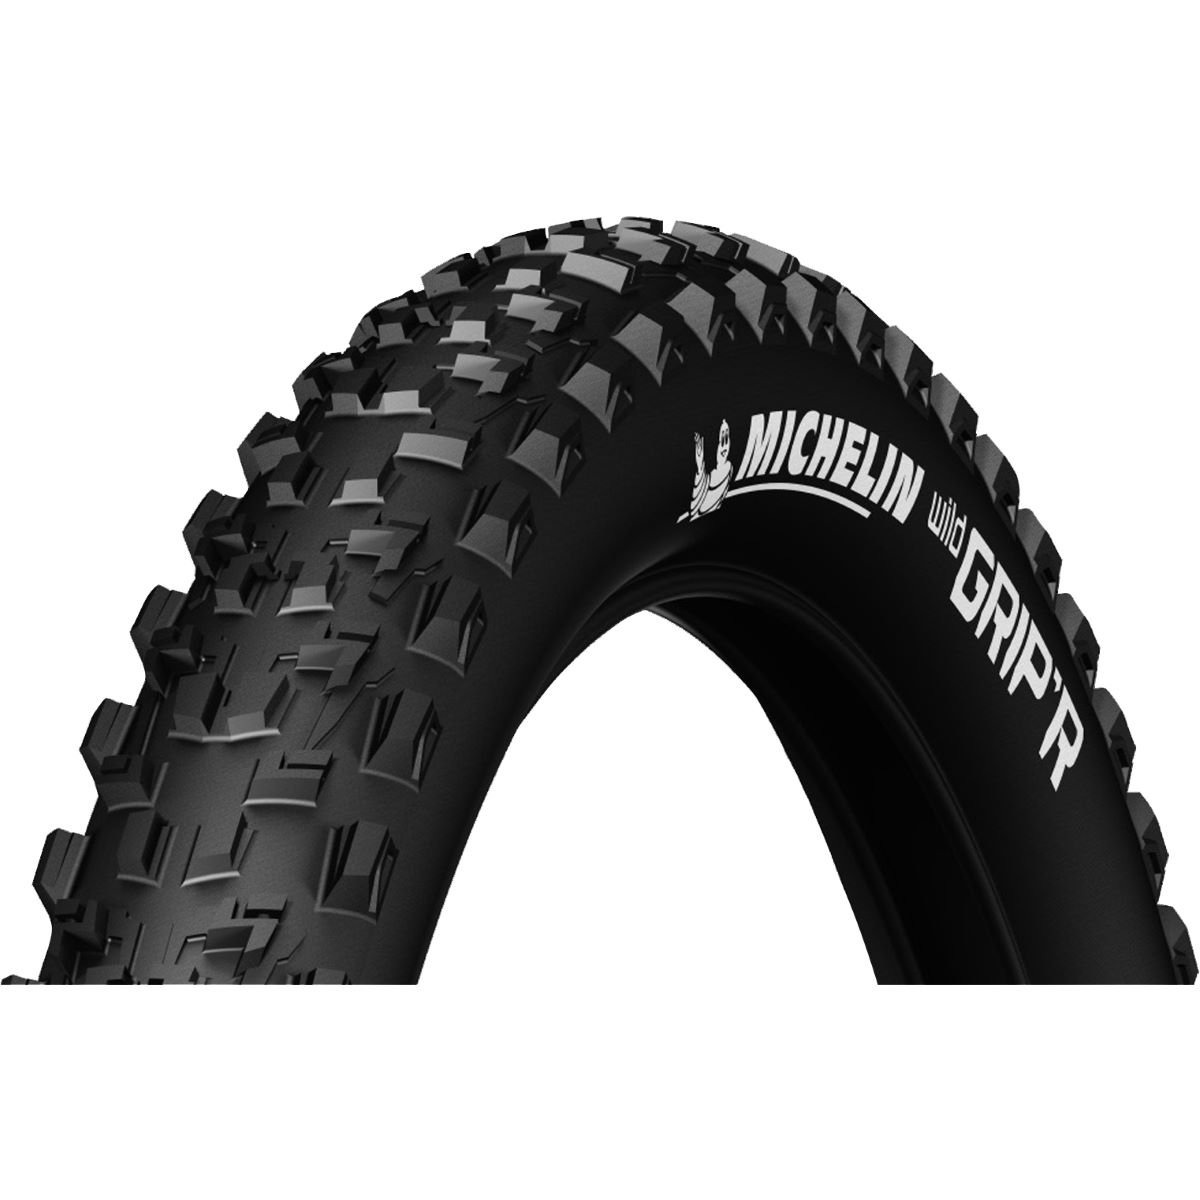 Pneu VTT Michelin Wild Grip'r Advanced Reinforced 27,5 pouces - 27.5 x 2.35 Noir Pneus VTT